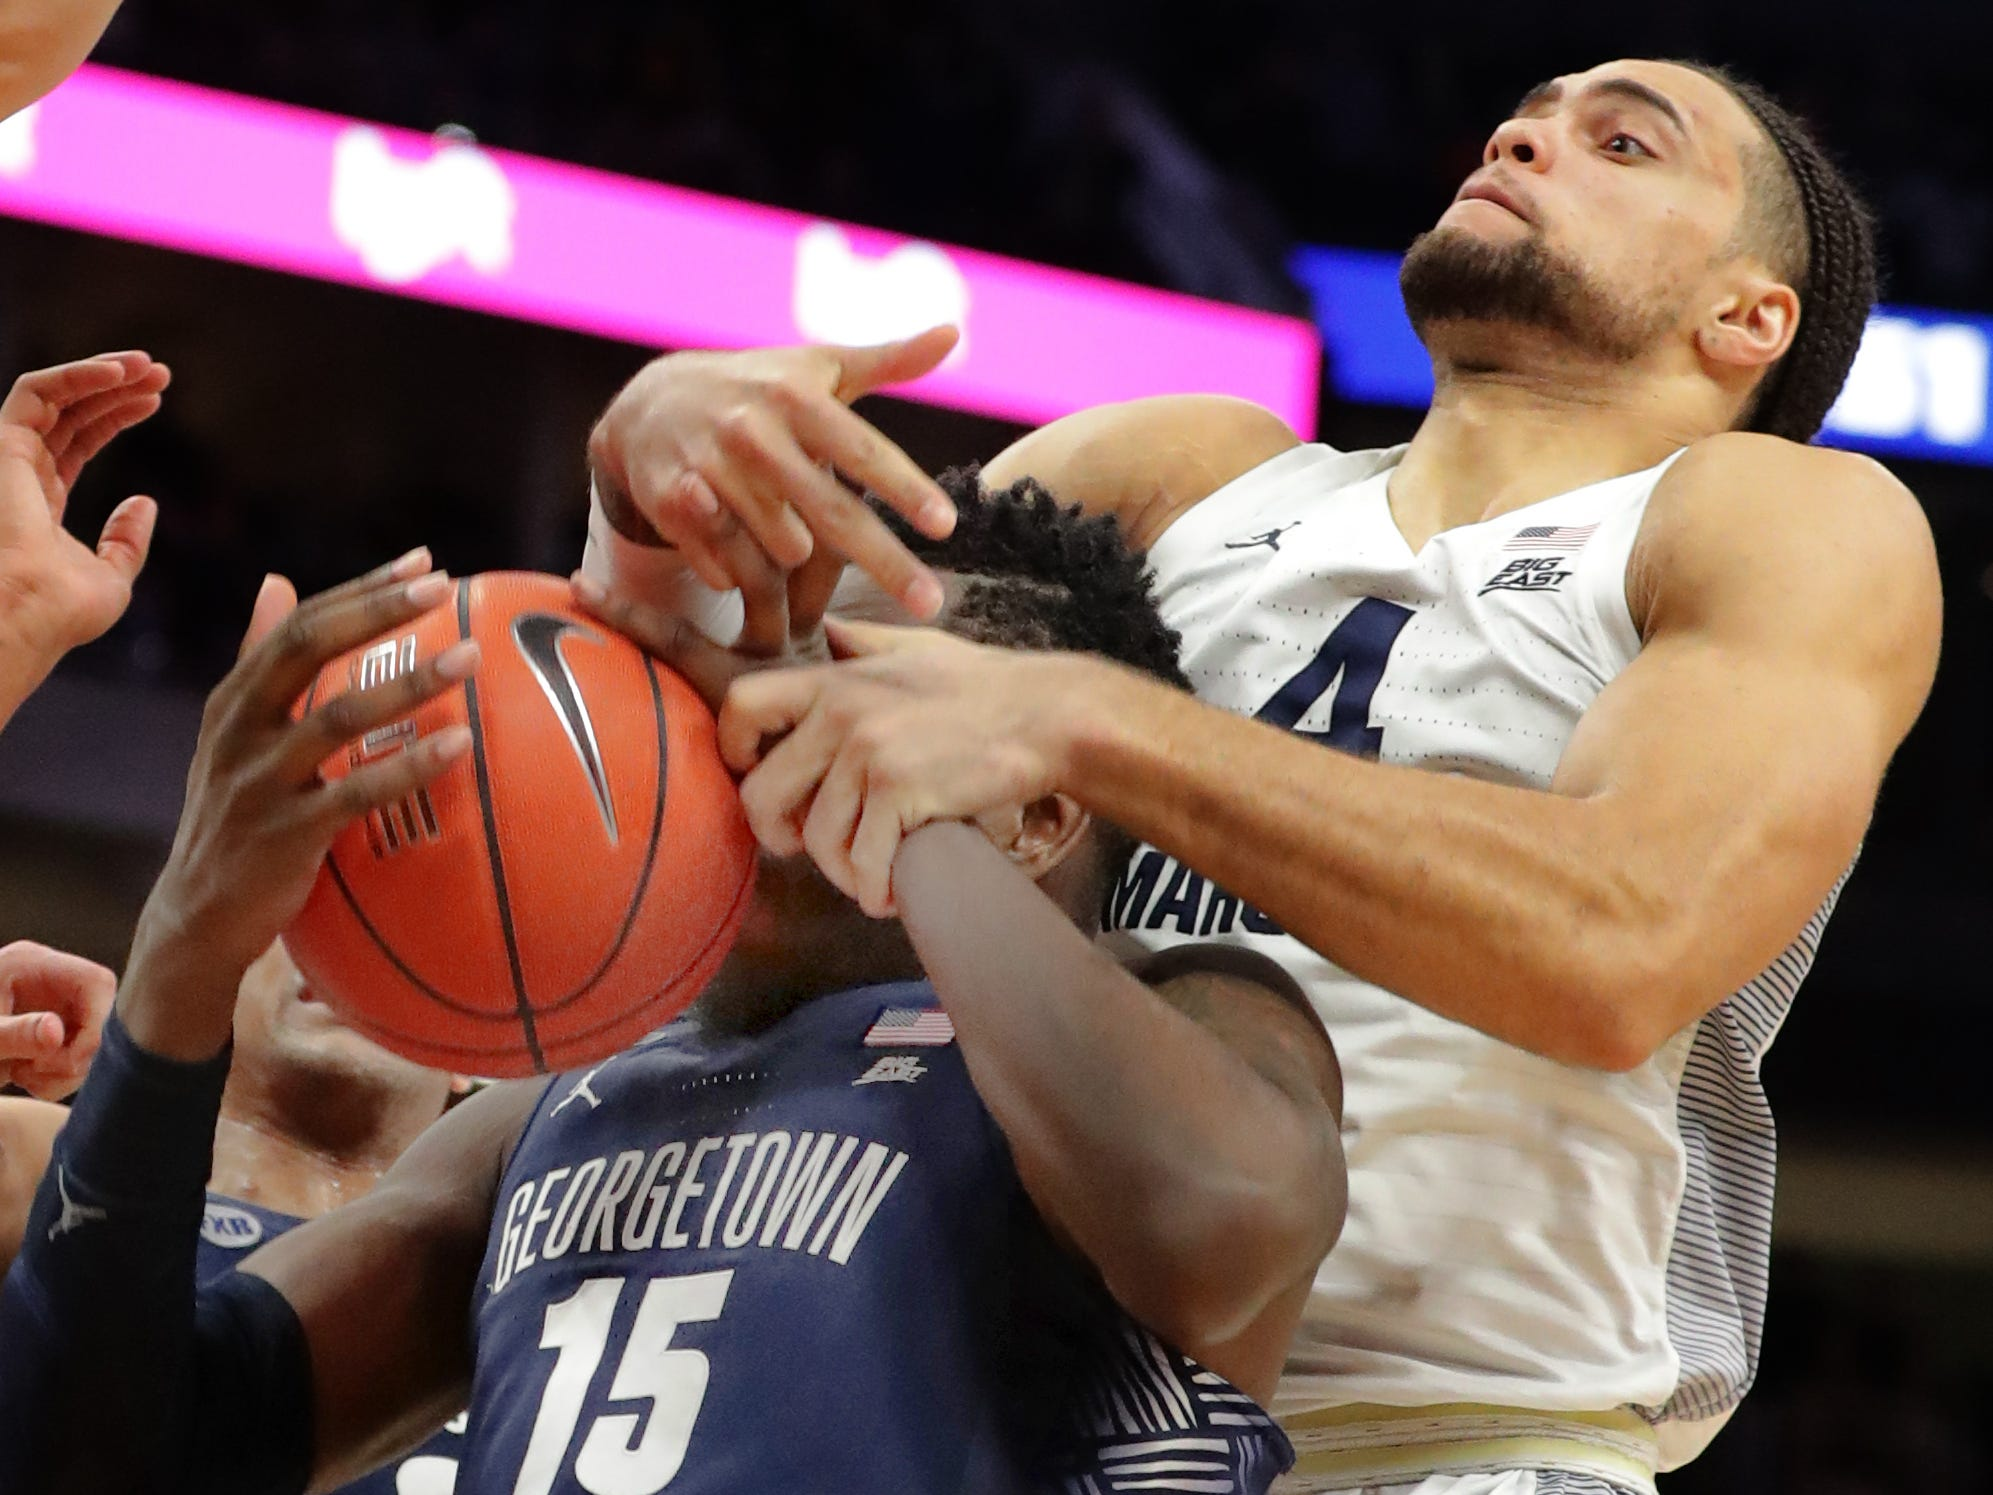 Georgetown center Jessie Govan pulls a rebound away from Theo John in the final minute of the game.